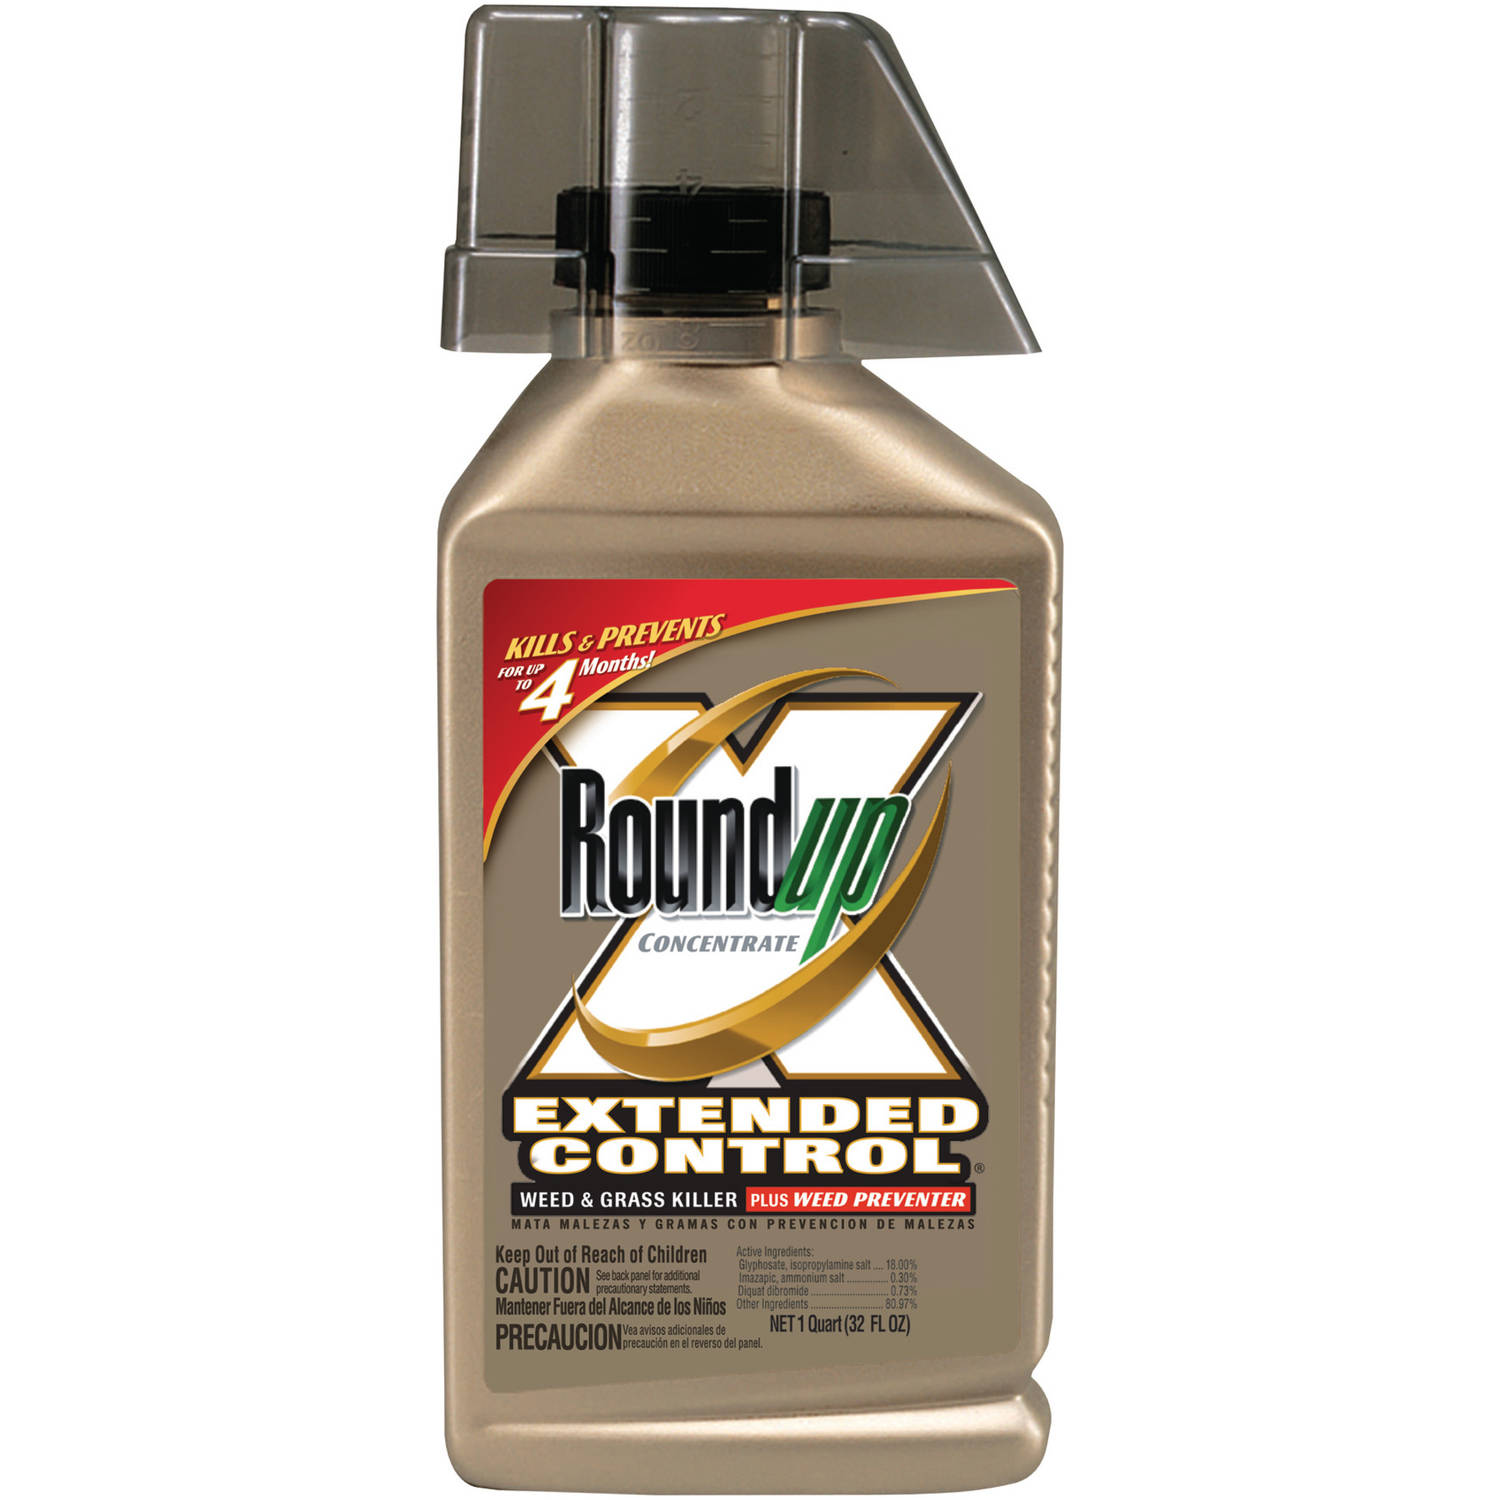 Roundup Concentrate Extended Control Weed & Grass Killer Plus Weed Preventer, 32 oz